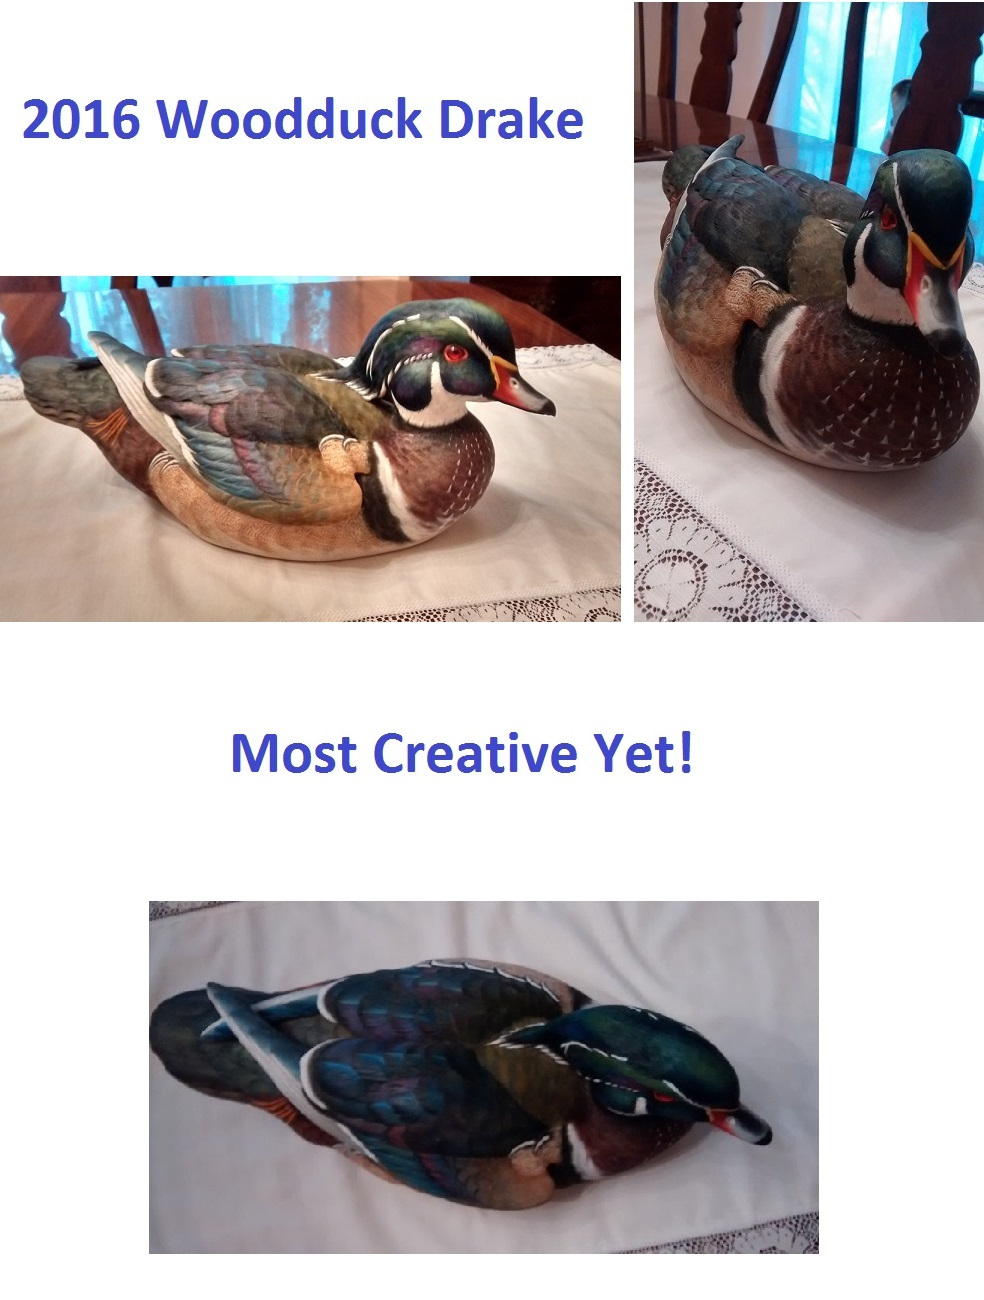 drake-woodduck-mostcreative.jpg